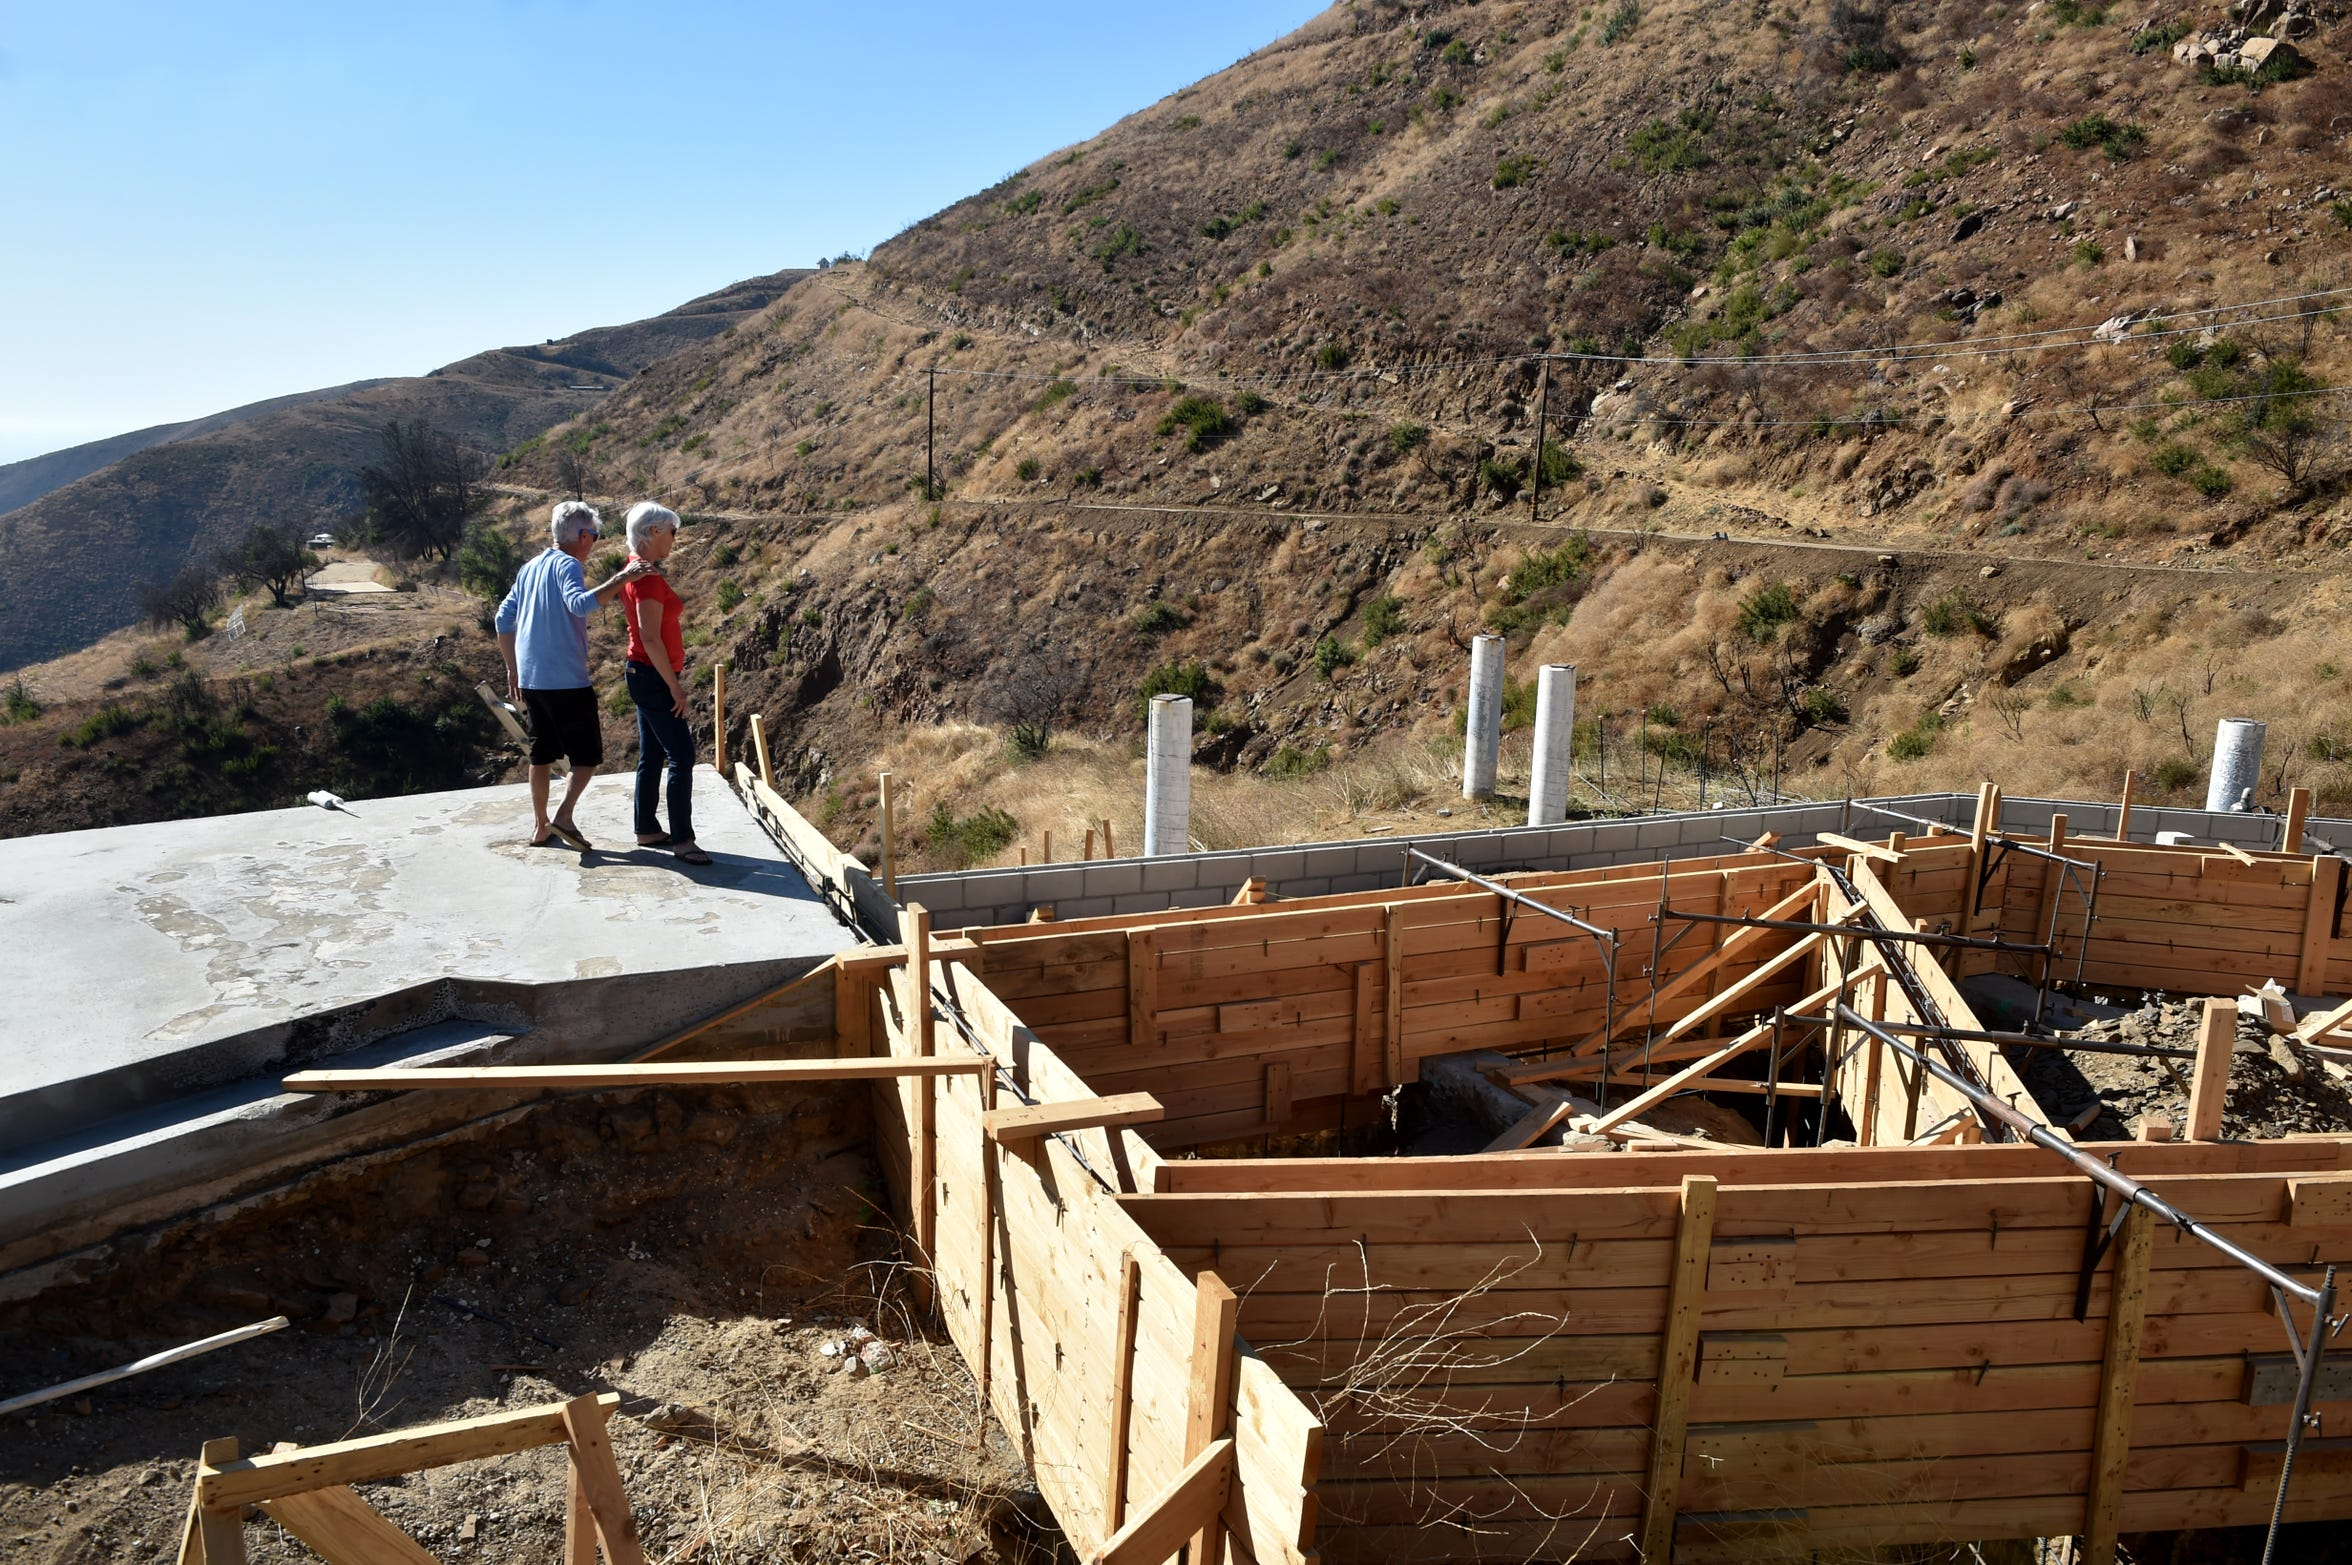 Larry Koch and his wife, Pam Davison, visit their property on Yellow Hill Road in the Santa Monica Mountains. Their home was leveled by the Woolsey Fire a year ago, in November 2018.